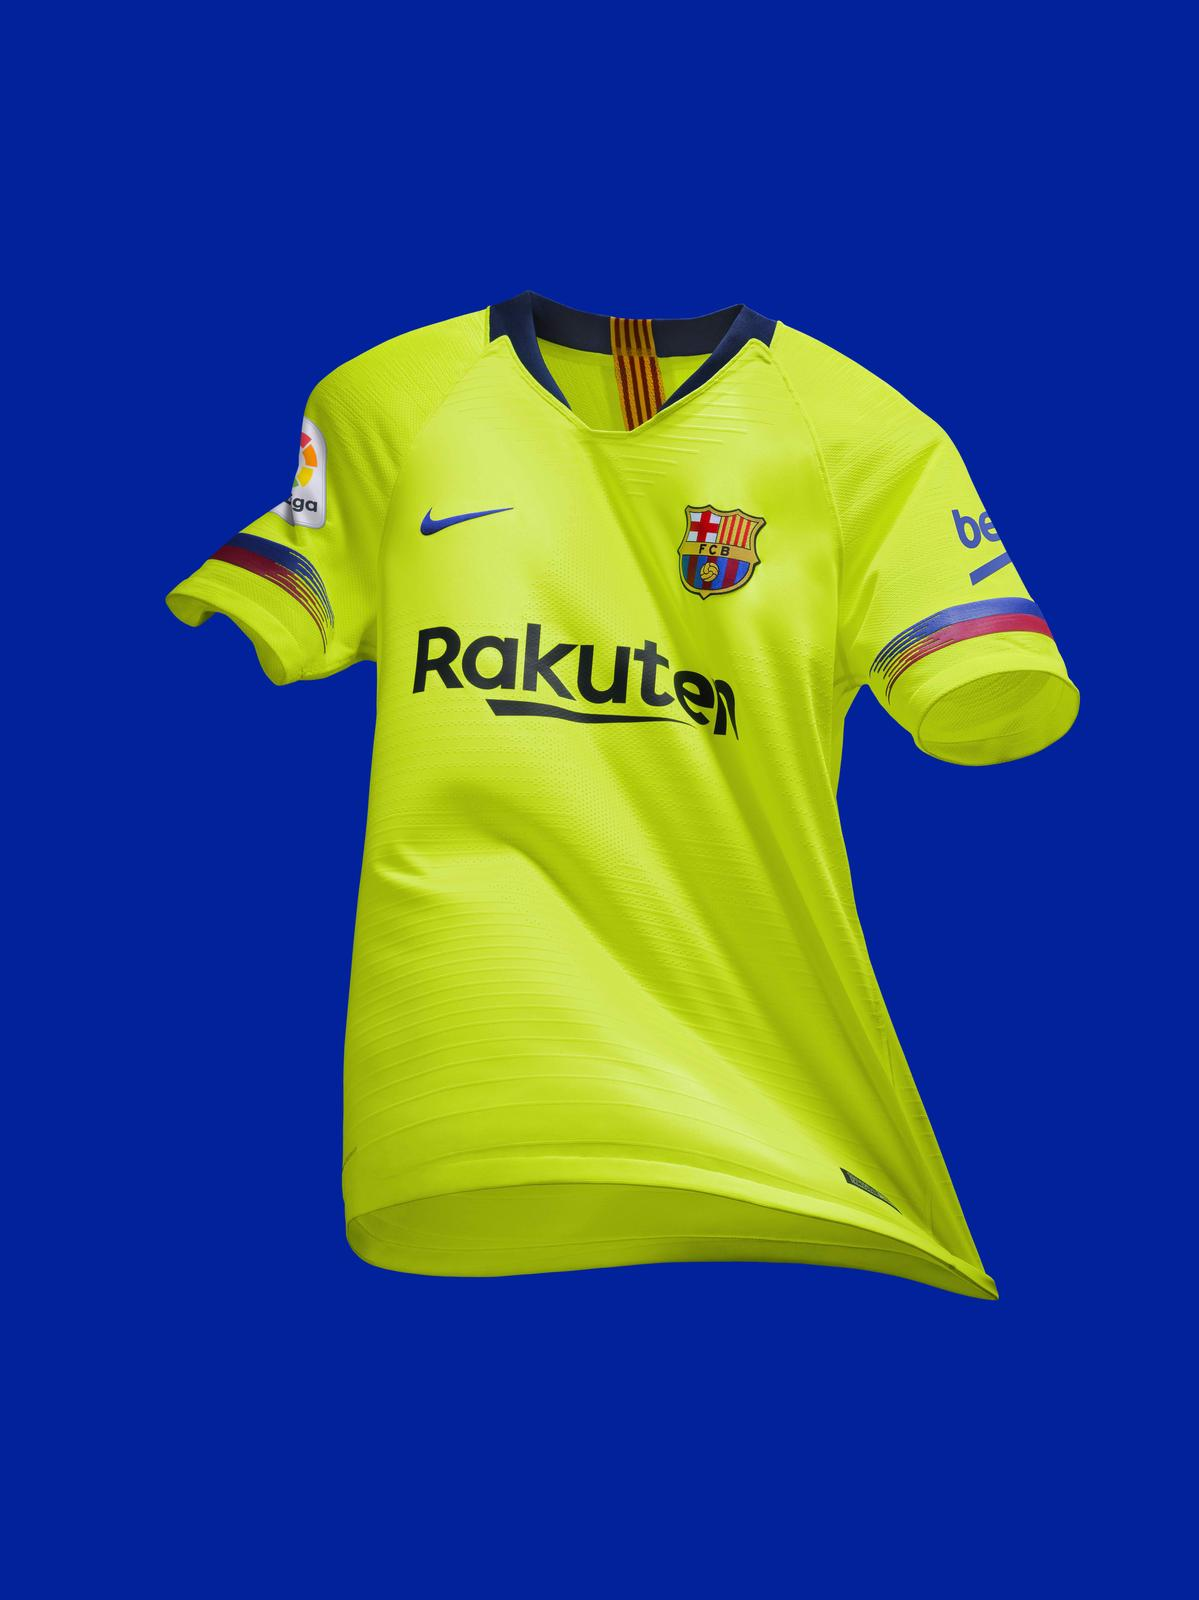 598a5110f62 FC Barcelona s Latest Away Kit Revels in a Daring History - Nike News